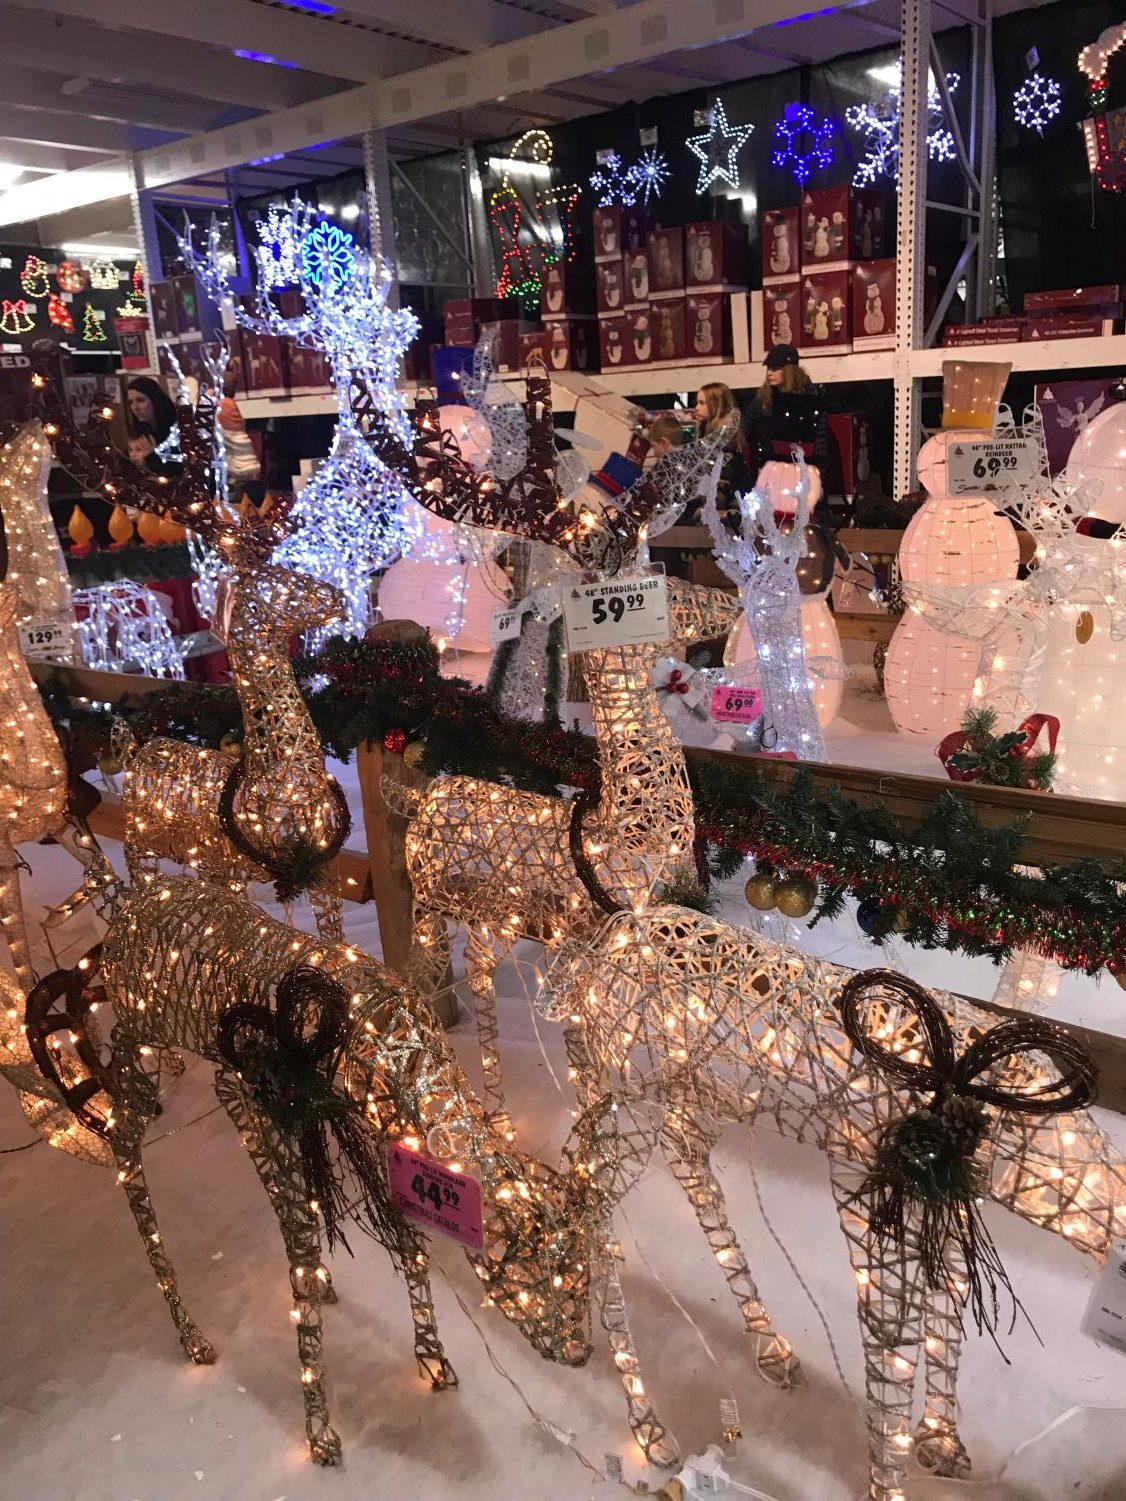 Many stores display Christmas decorations before they display Thanksgiving decorations, despite the chronology of the holidays.